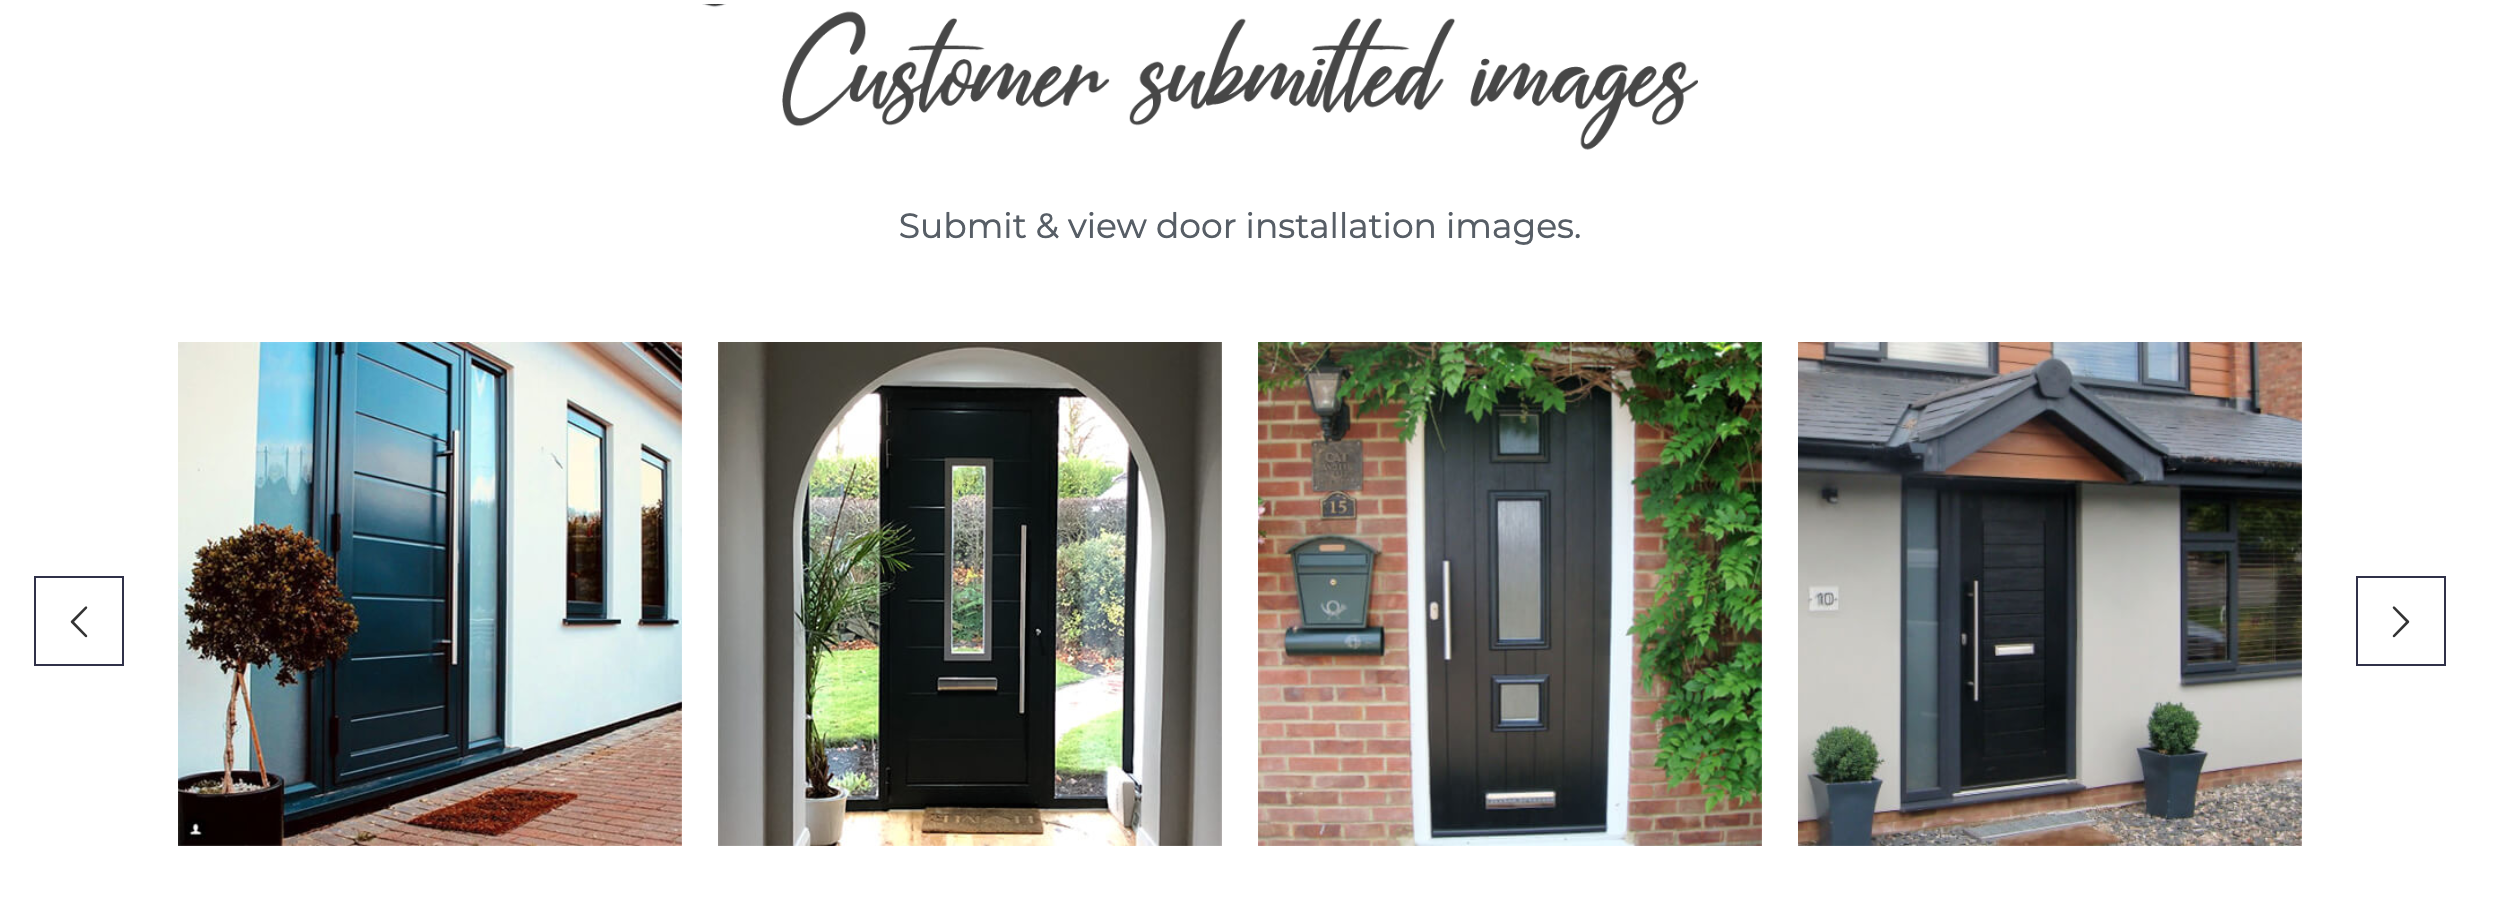 Customer Composite doors